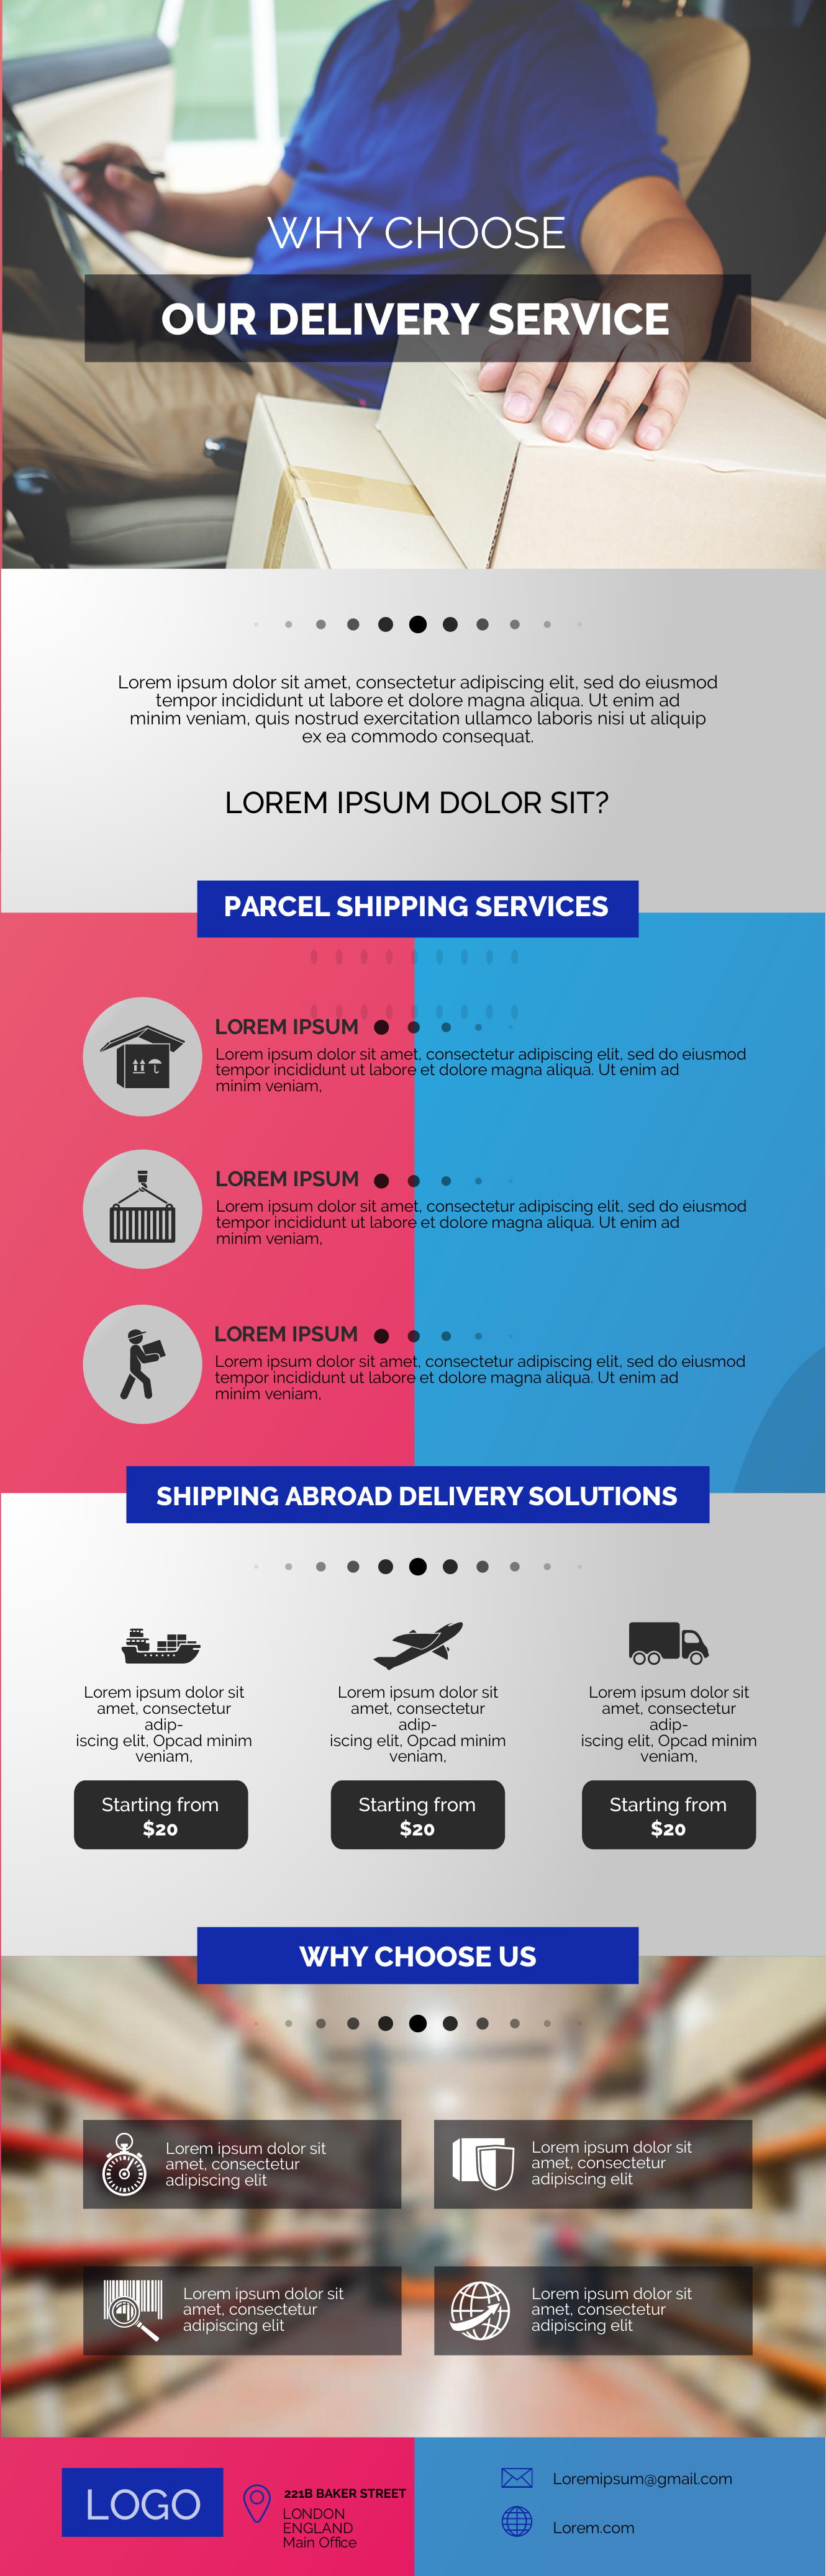 logistics and delivery infographic template